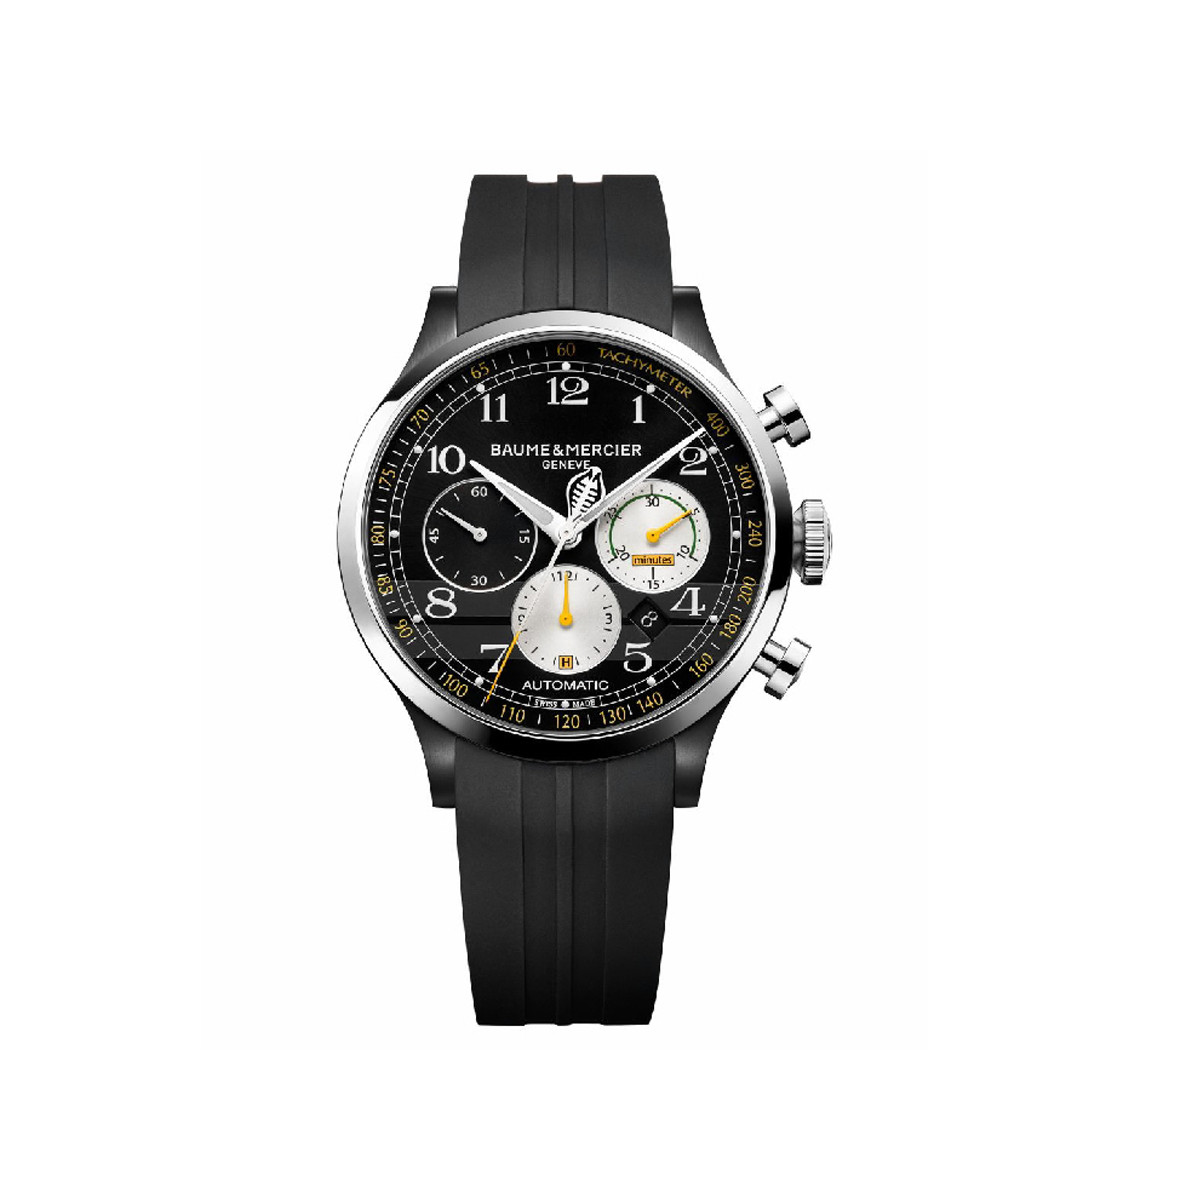 BAUME & MERCIER WATCH CAPELAND COBRA ED LIMITED